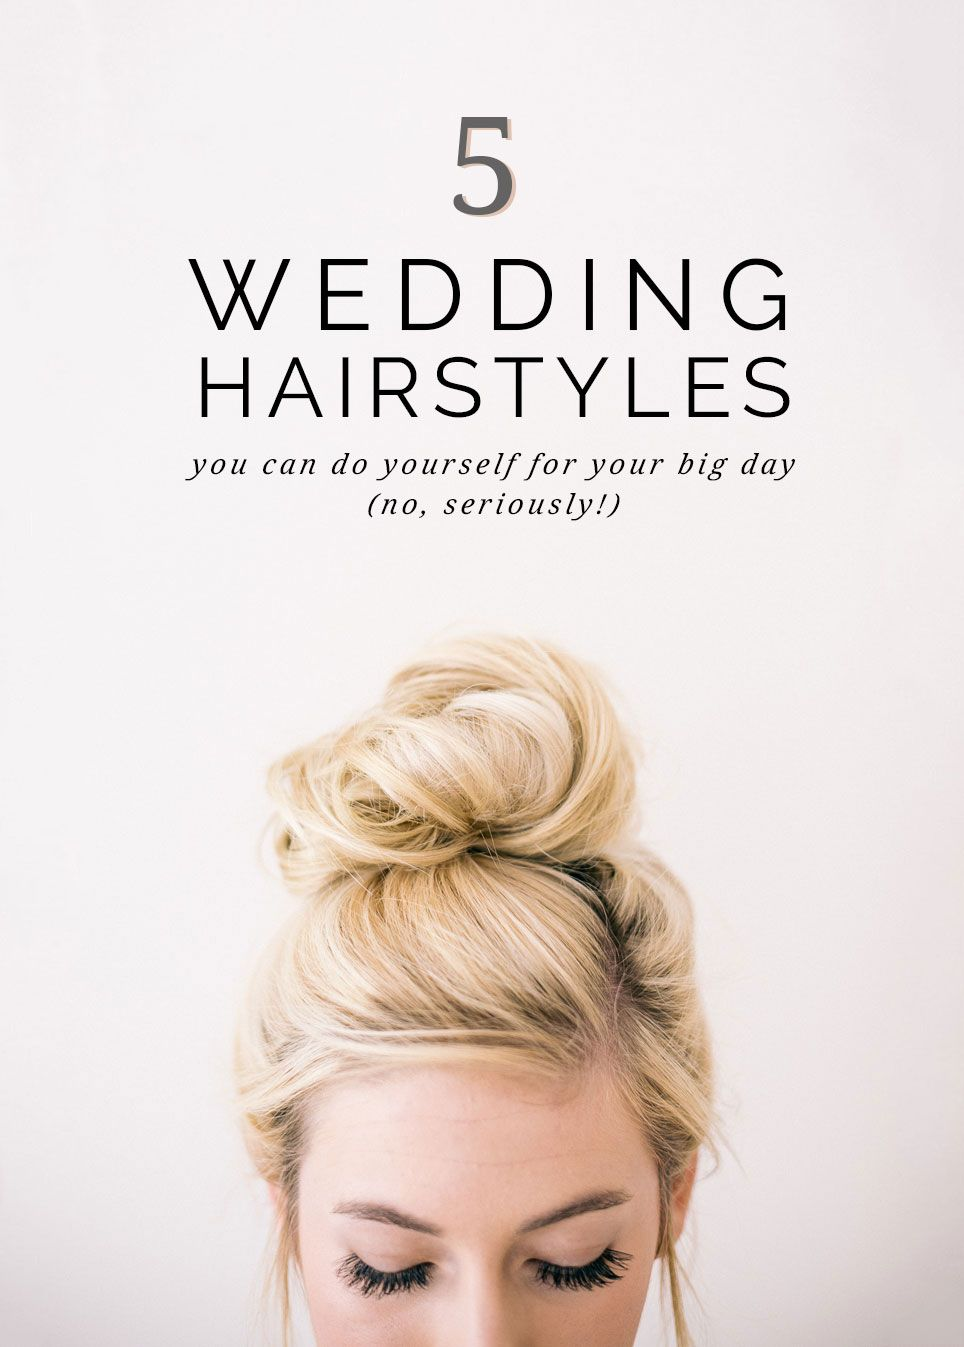 5 super easy wedding hairstyles you can do yourself pipkin paper 5 super easy wedding hairstyles you can do yourself pipkin paper company solutioingenieria Image collections